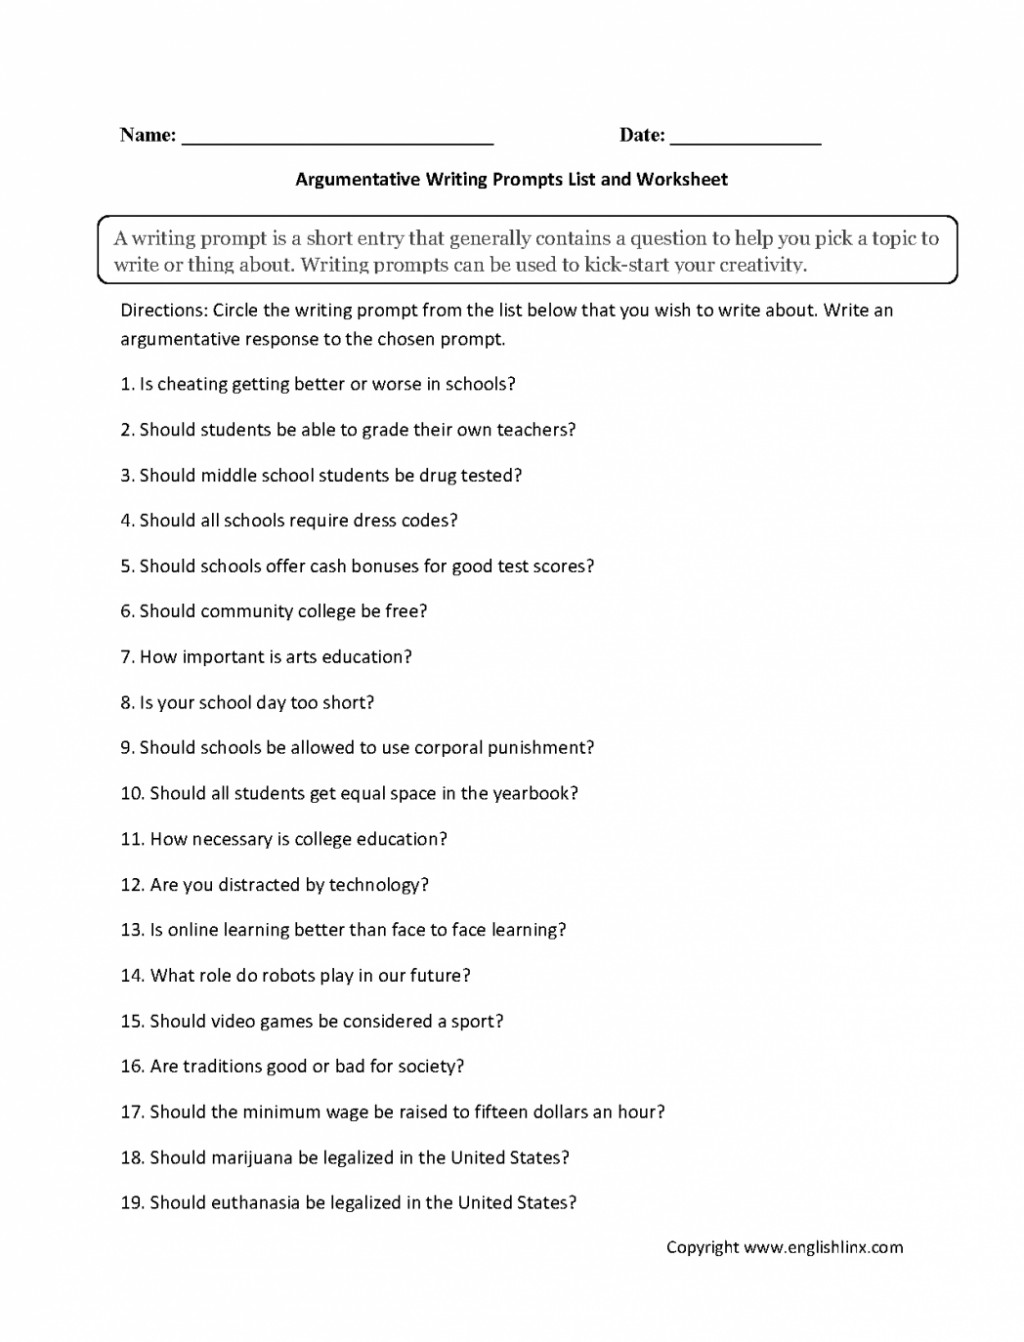 002 Essay Example Argument Prompts Goal Blockety Co Argumentative Topics Writing List Work For High School Subjects About Animals On Racism College Sports Middle Rare Persuasive Students Unique 6th Grade Large